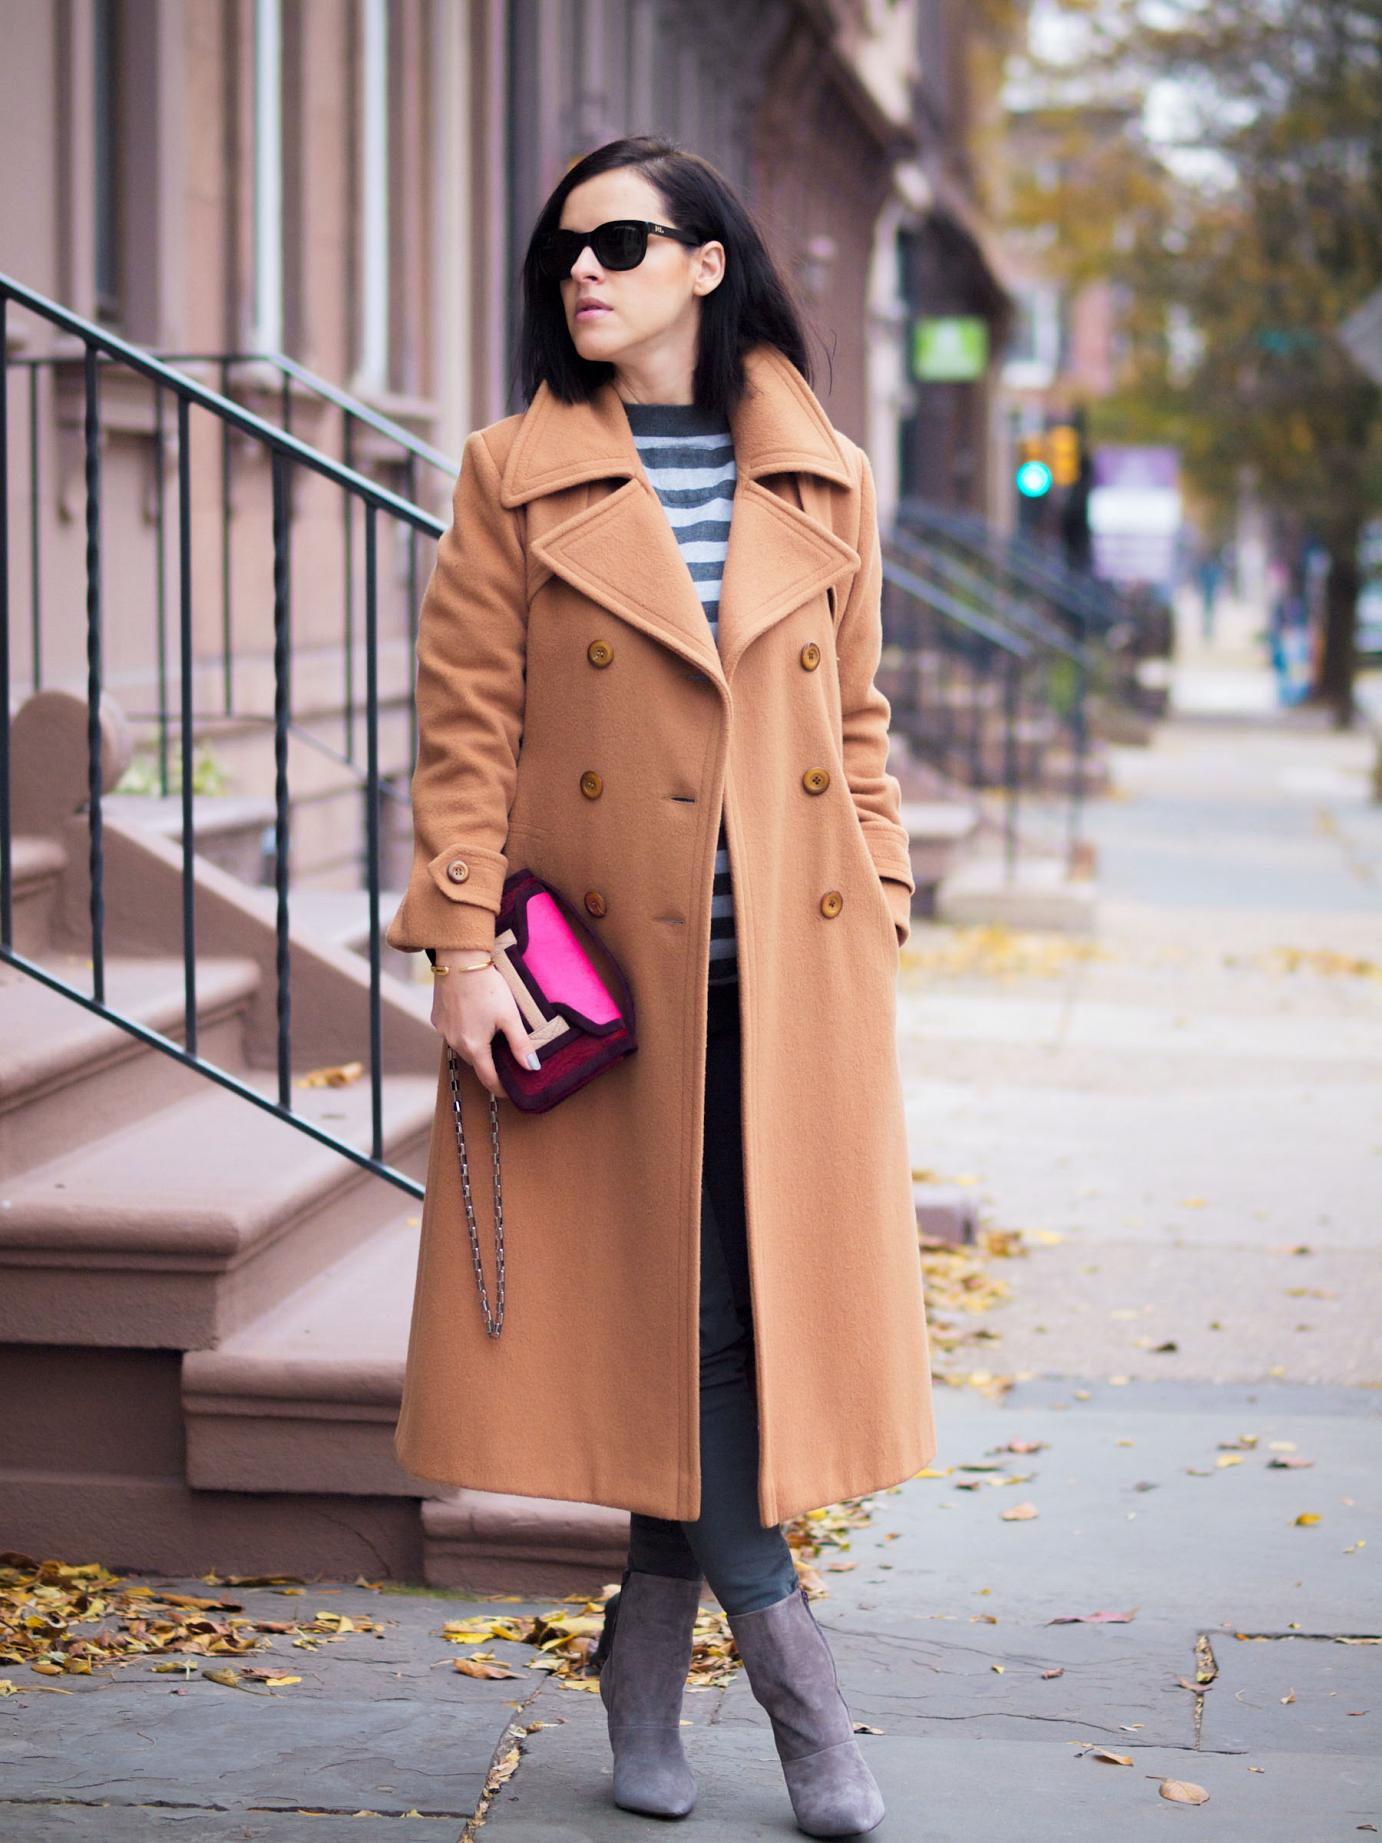 bittersweet colours, street style, fall coats, camel coat, camel and grey mix, pierre hardy bag, levis jeans, brandy pham jewelry, maternity style, baby bump, 25 weeks, sweater weather,